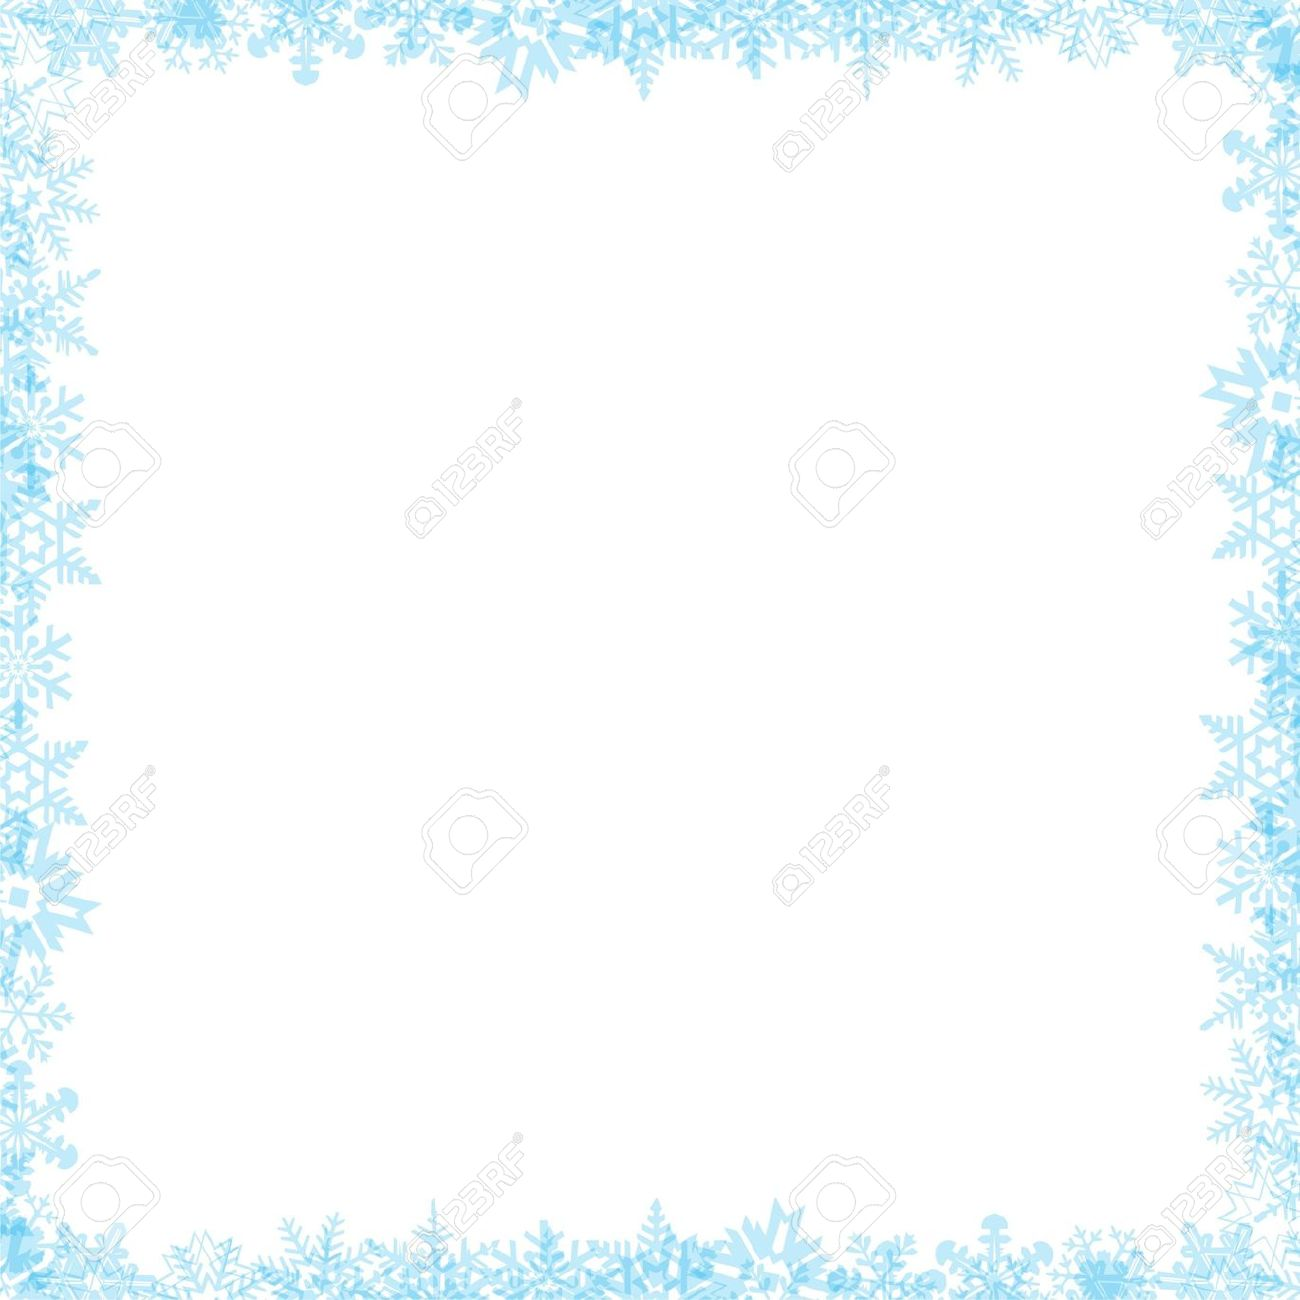 image freeuse stock Snow borders clipart. Station .